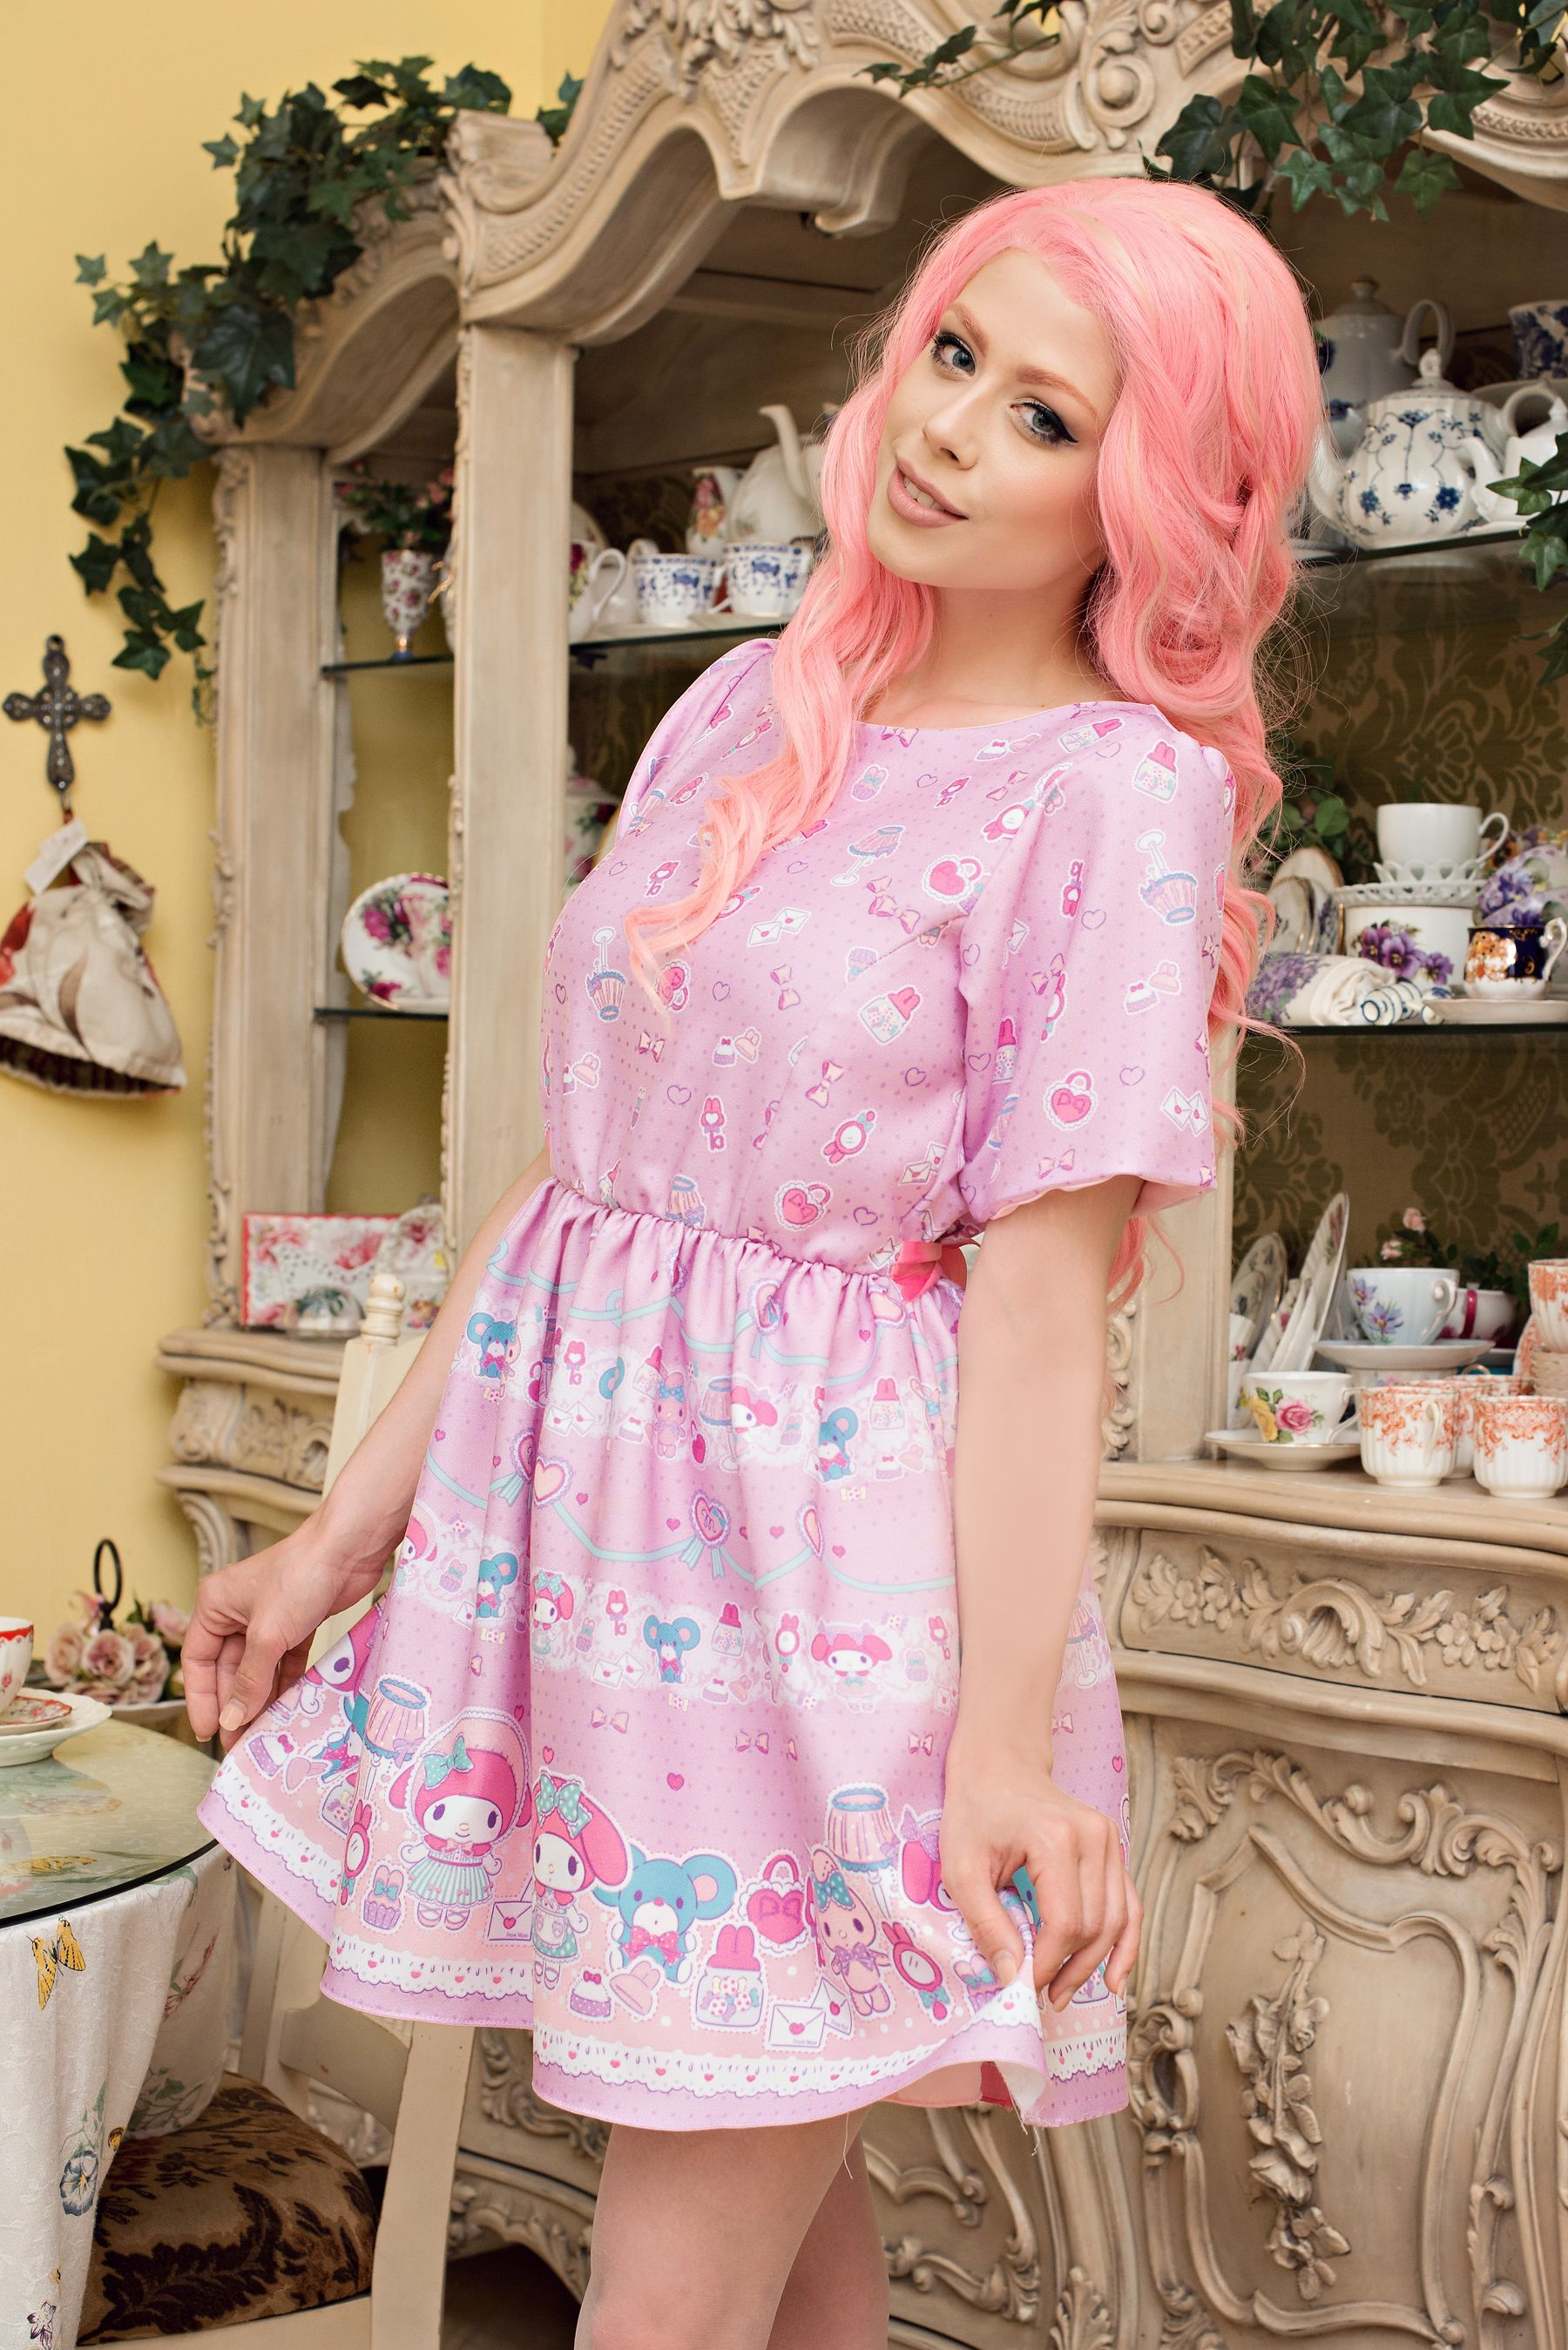 japanla x my melody dress me up tea party dress my melody collection. Black Bedroom Furniture Sets. Home Design Ideas